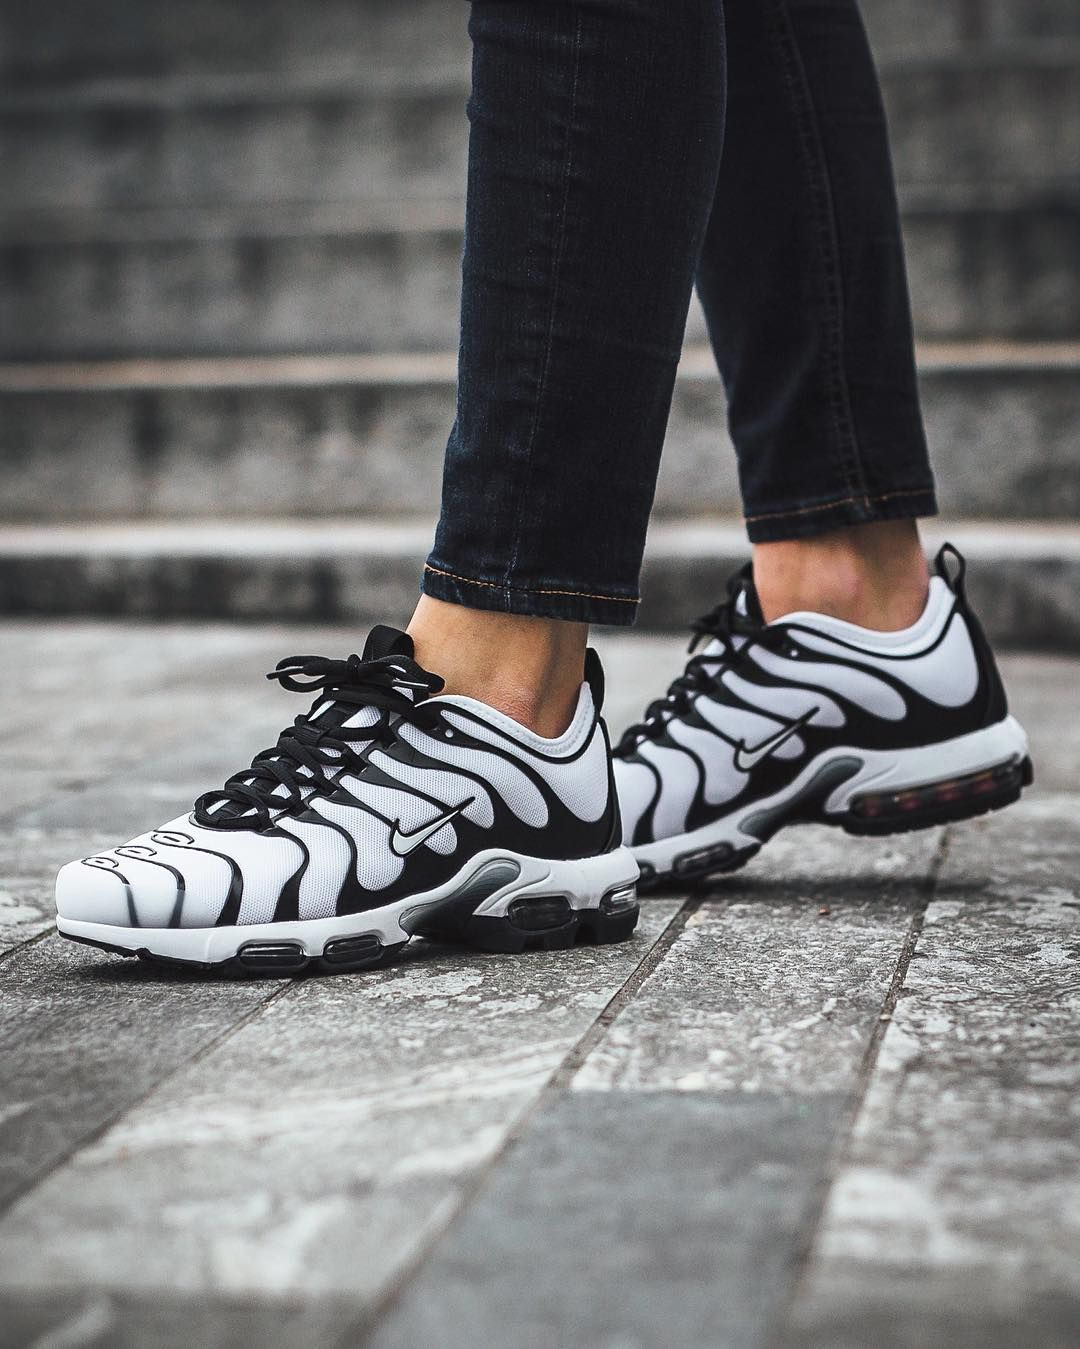 541b6ae1c2 ... sale nike wmns air max plus tn ultra white white black 3f44c 765b5